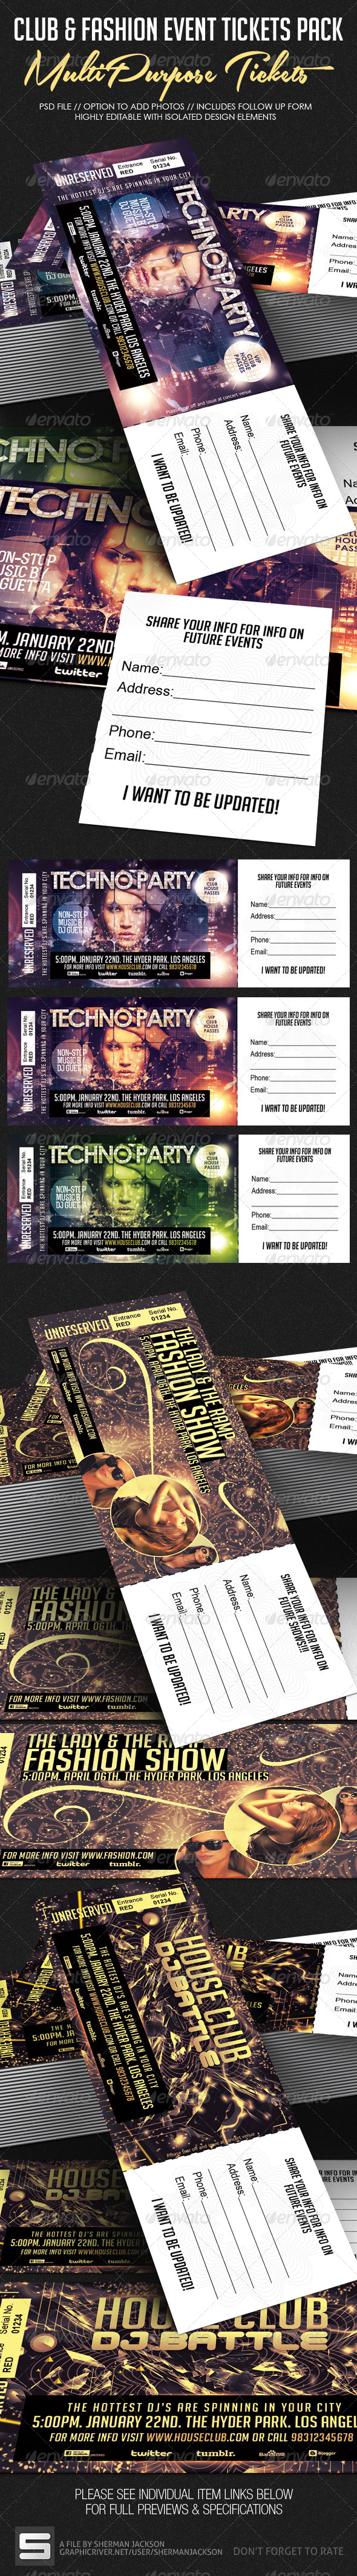 GraphicRiver Club Fashion & Event Tickets Bundle Pack 7410259